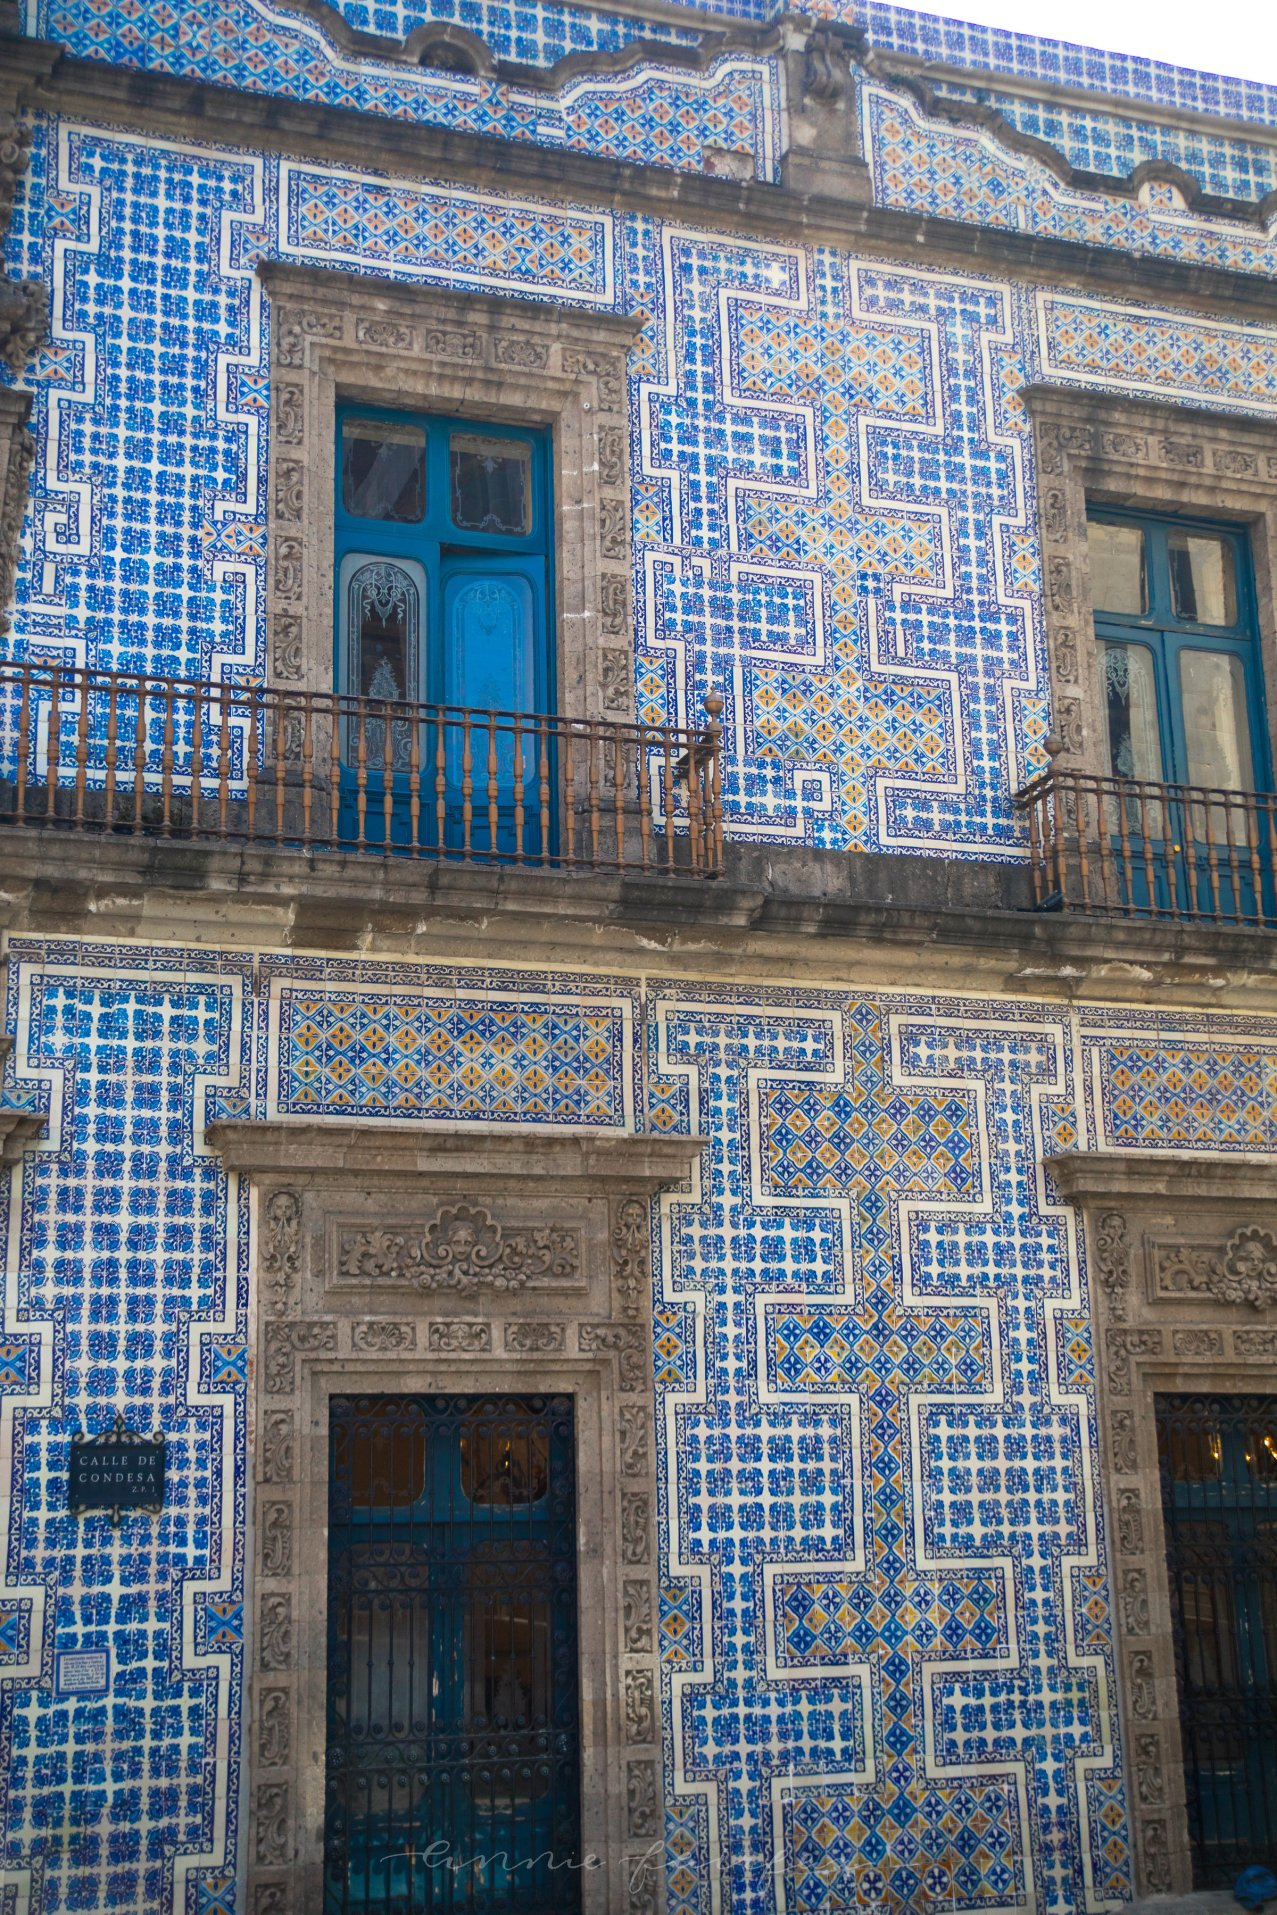 Calle de Condesa Blue and White Building The House of Tiles The Complete Traveler's Guide to Mexico City Mexico Where to Stay What to Eat Where to Visit What to Do Places to Avoid How to Stay Safe in Mexico City